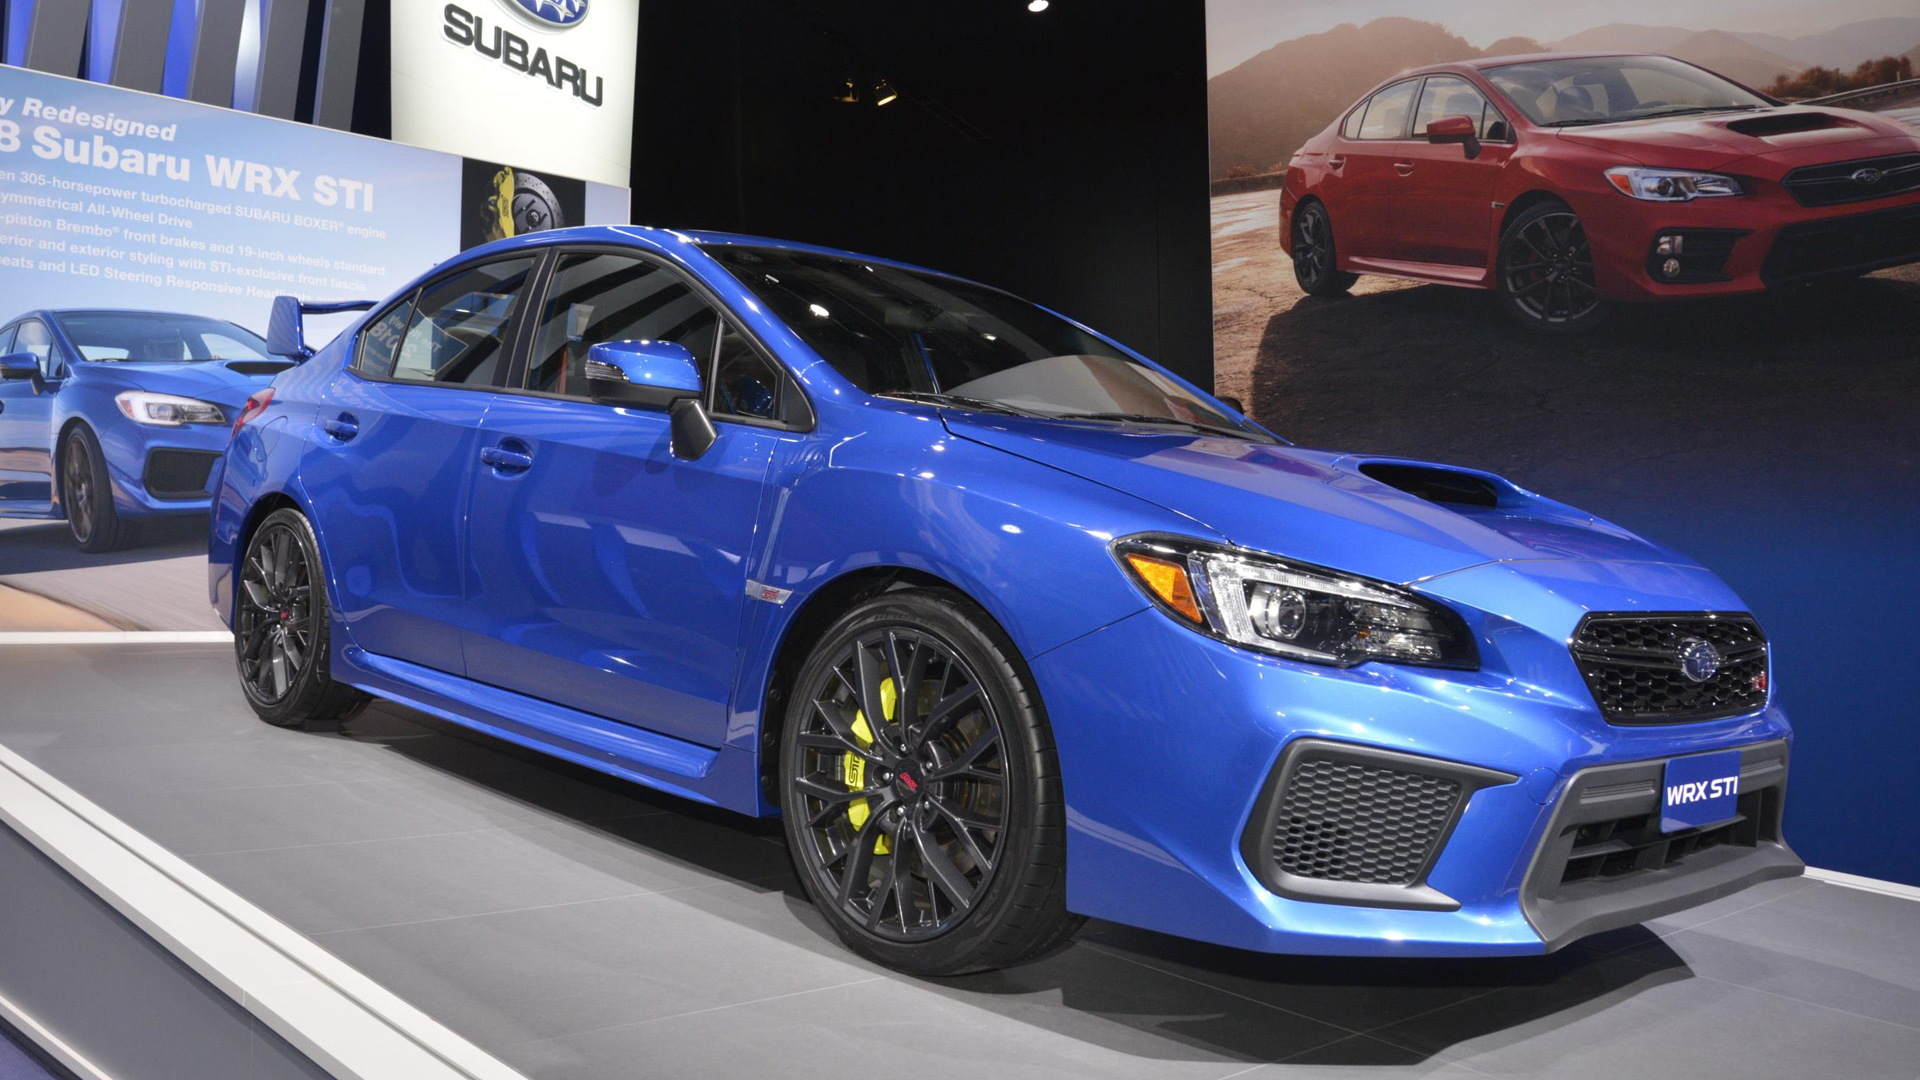 2018 subaru wrx and wrx sti debut at 2017 detroit auto show. Black Bedroom Furniture Sets. Home Design Ideas